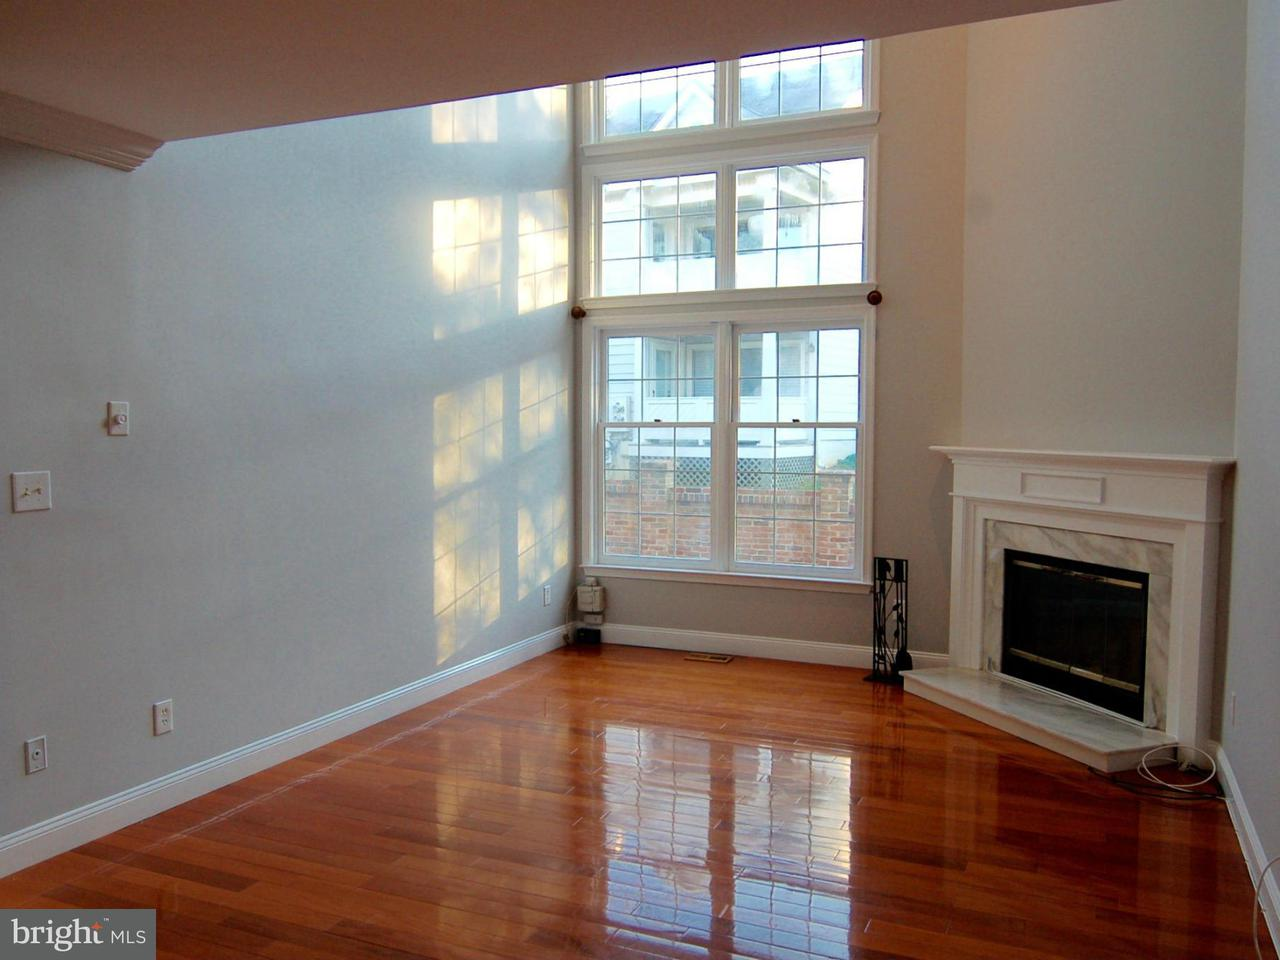 Other Residential for Rent at 10928 Bloomingdale Dr North Bethesda, Maryland 20852 United States